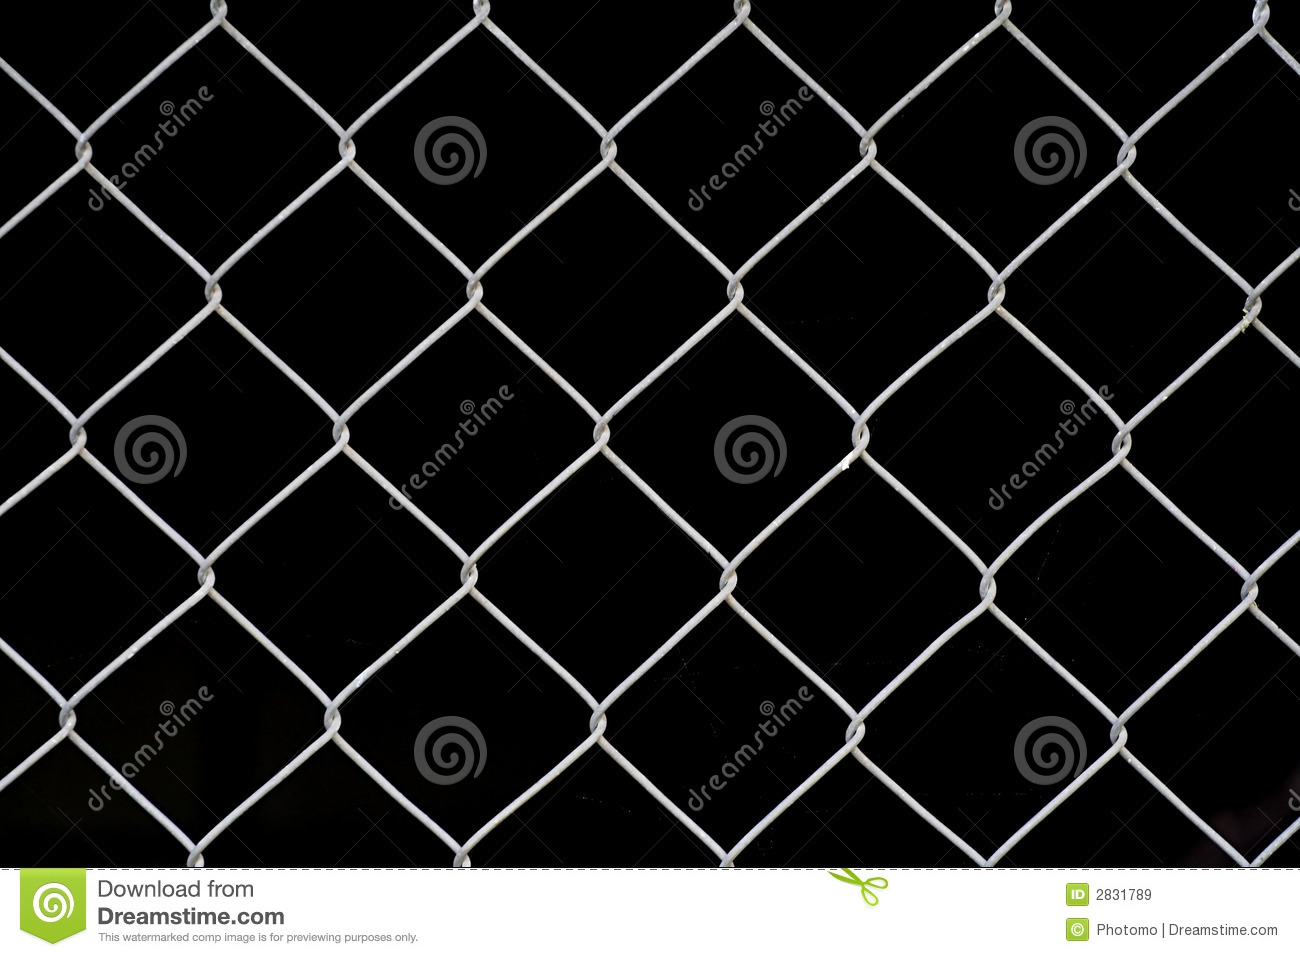 Wire grid window stock image. Image of block, tiled, fence - 2831789